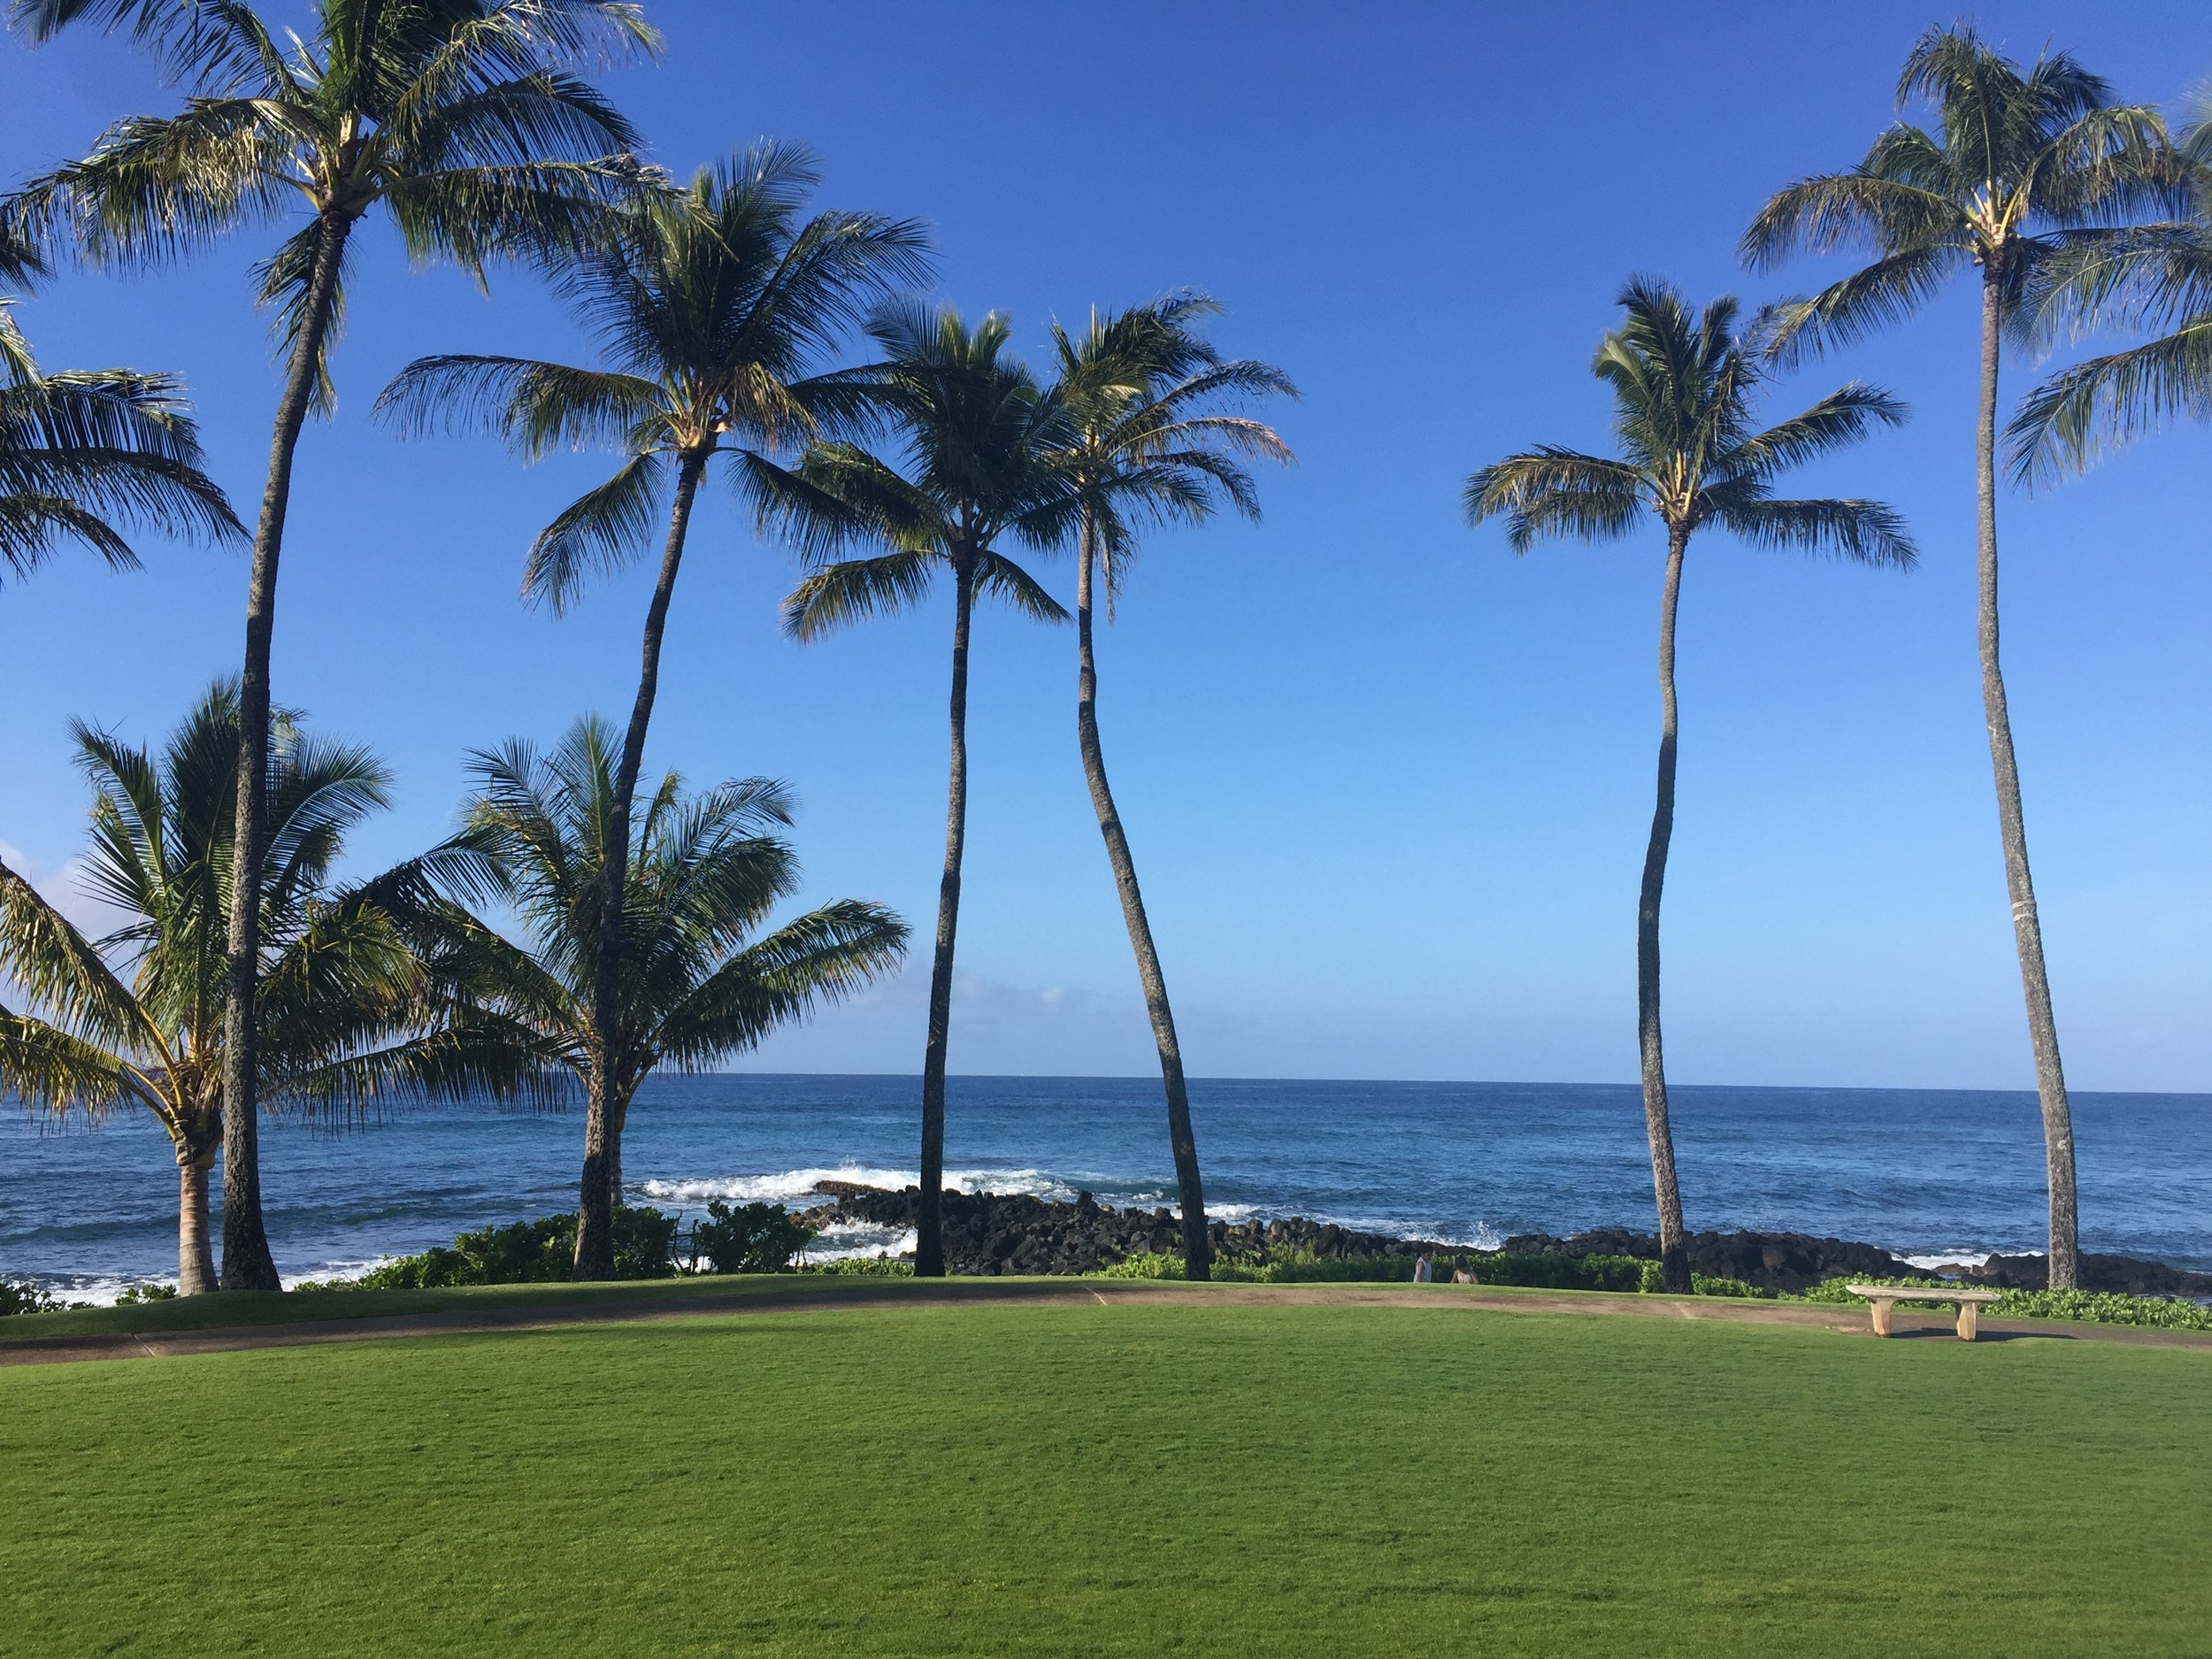 My happy place. The Sheraton Poipu Beach where I wed the love of my life.